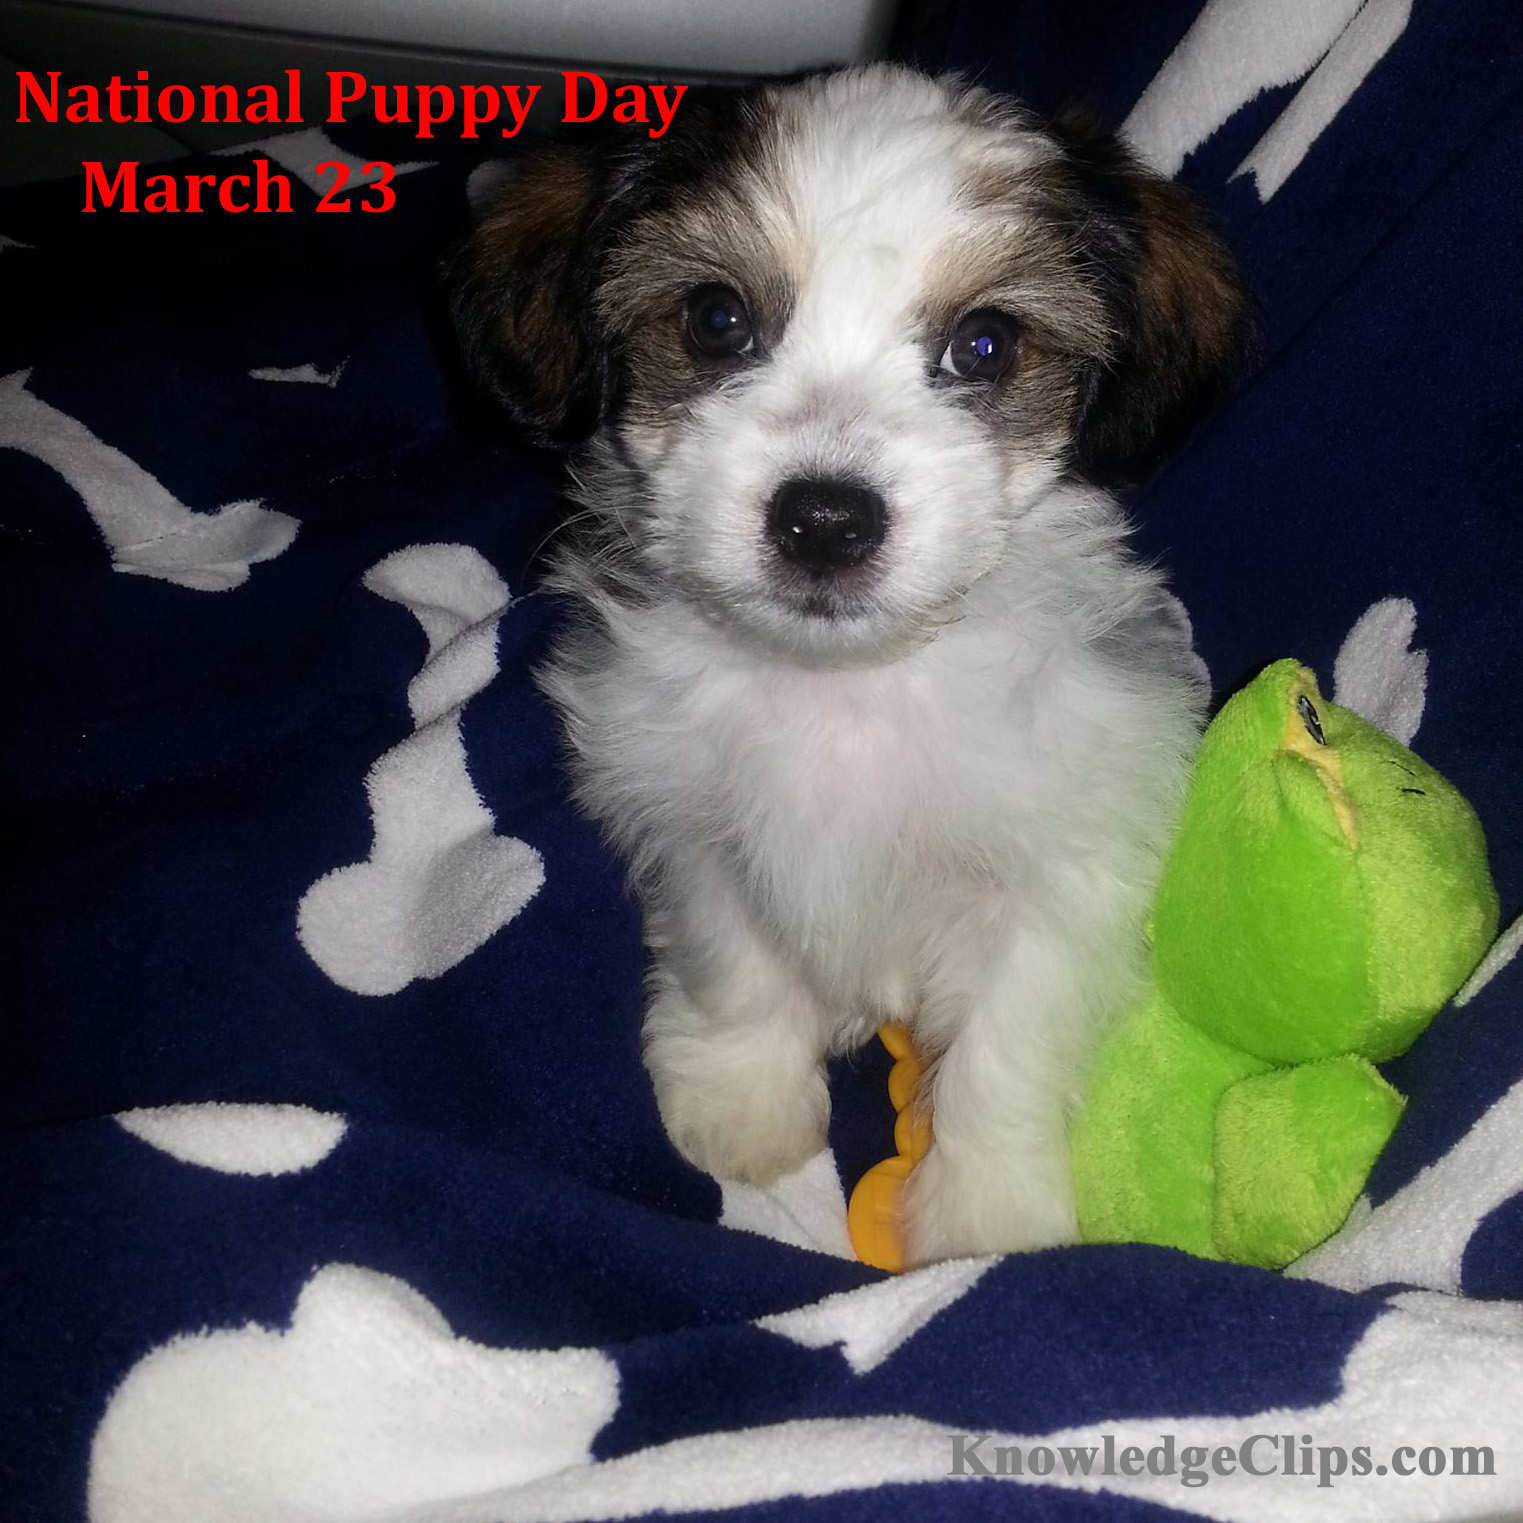 National Puppy Day - March 23